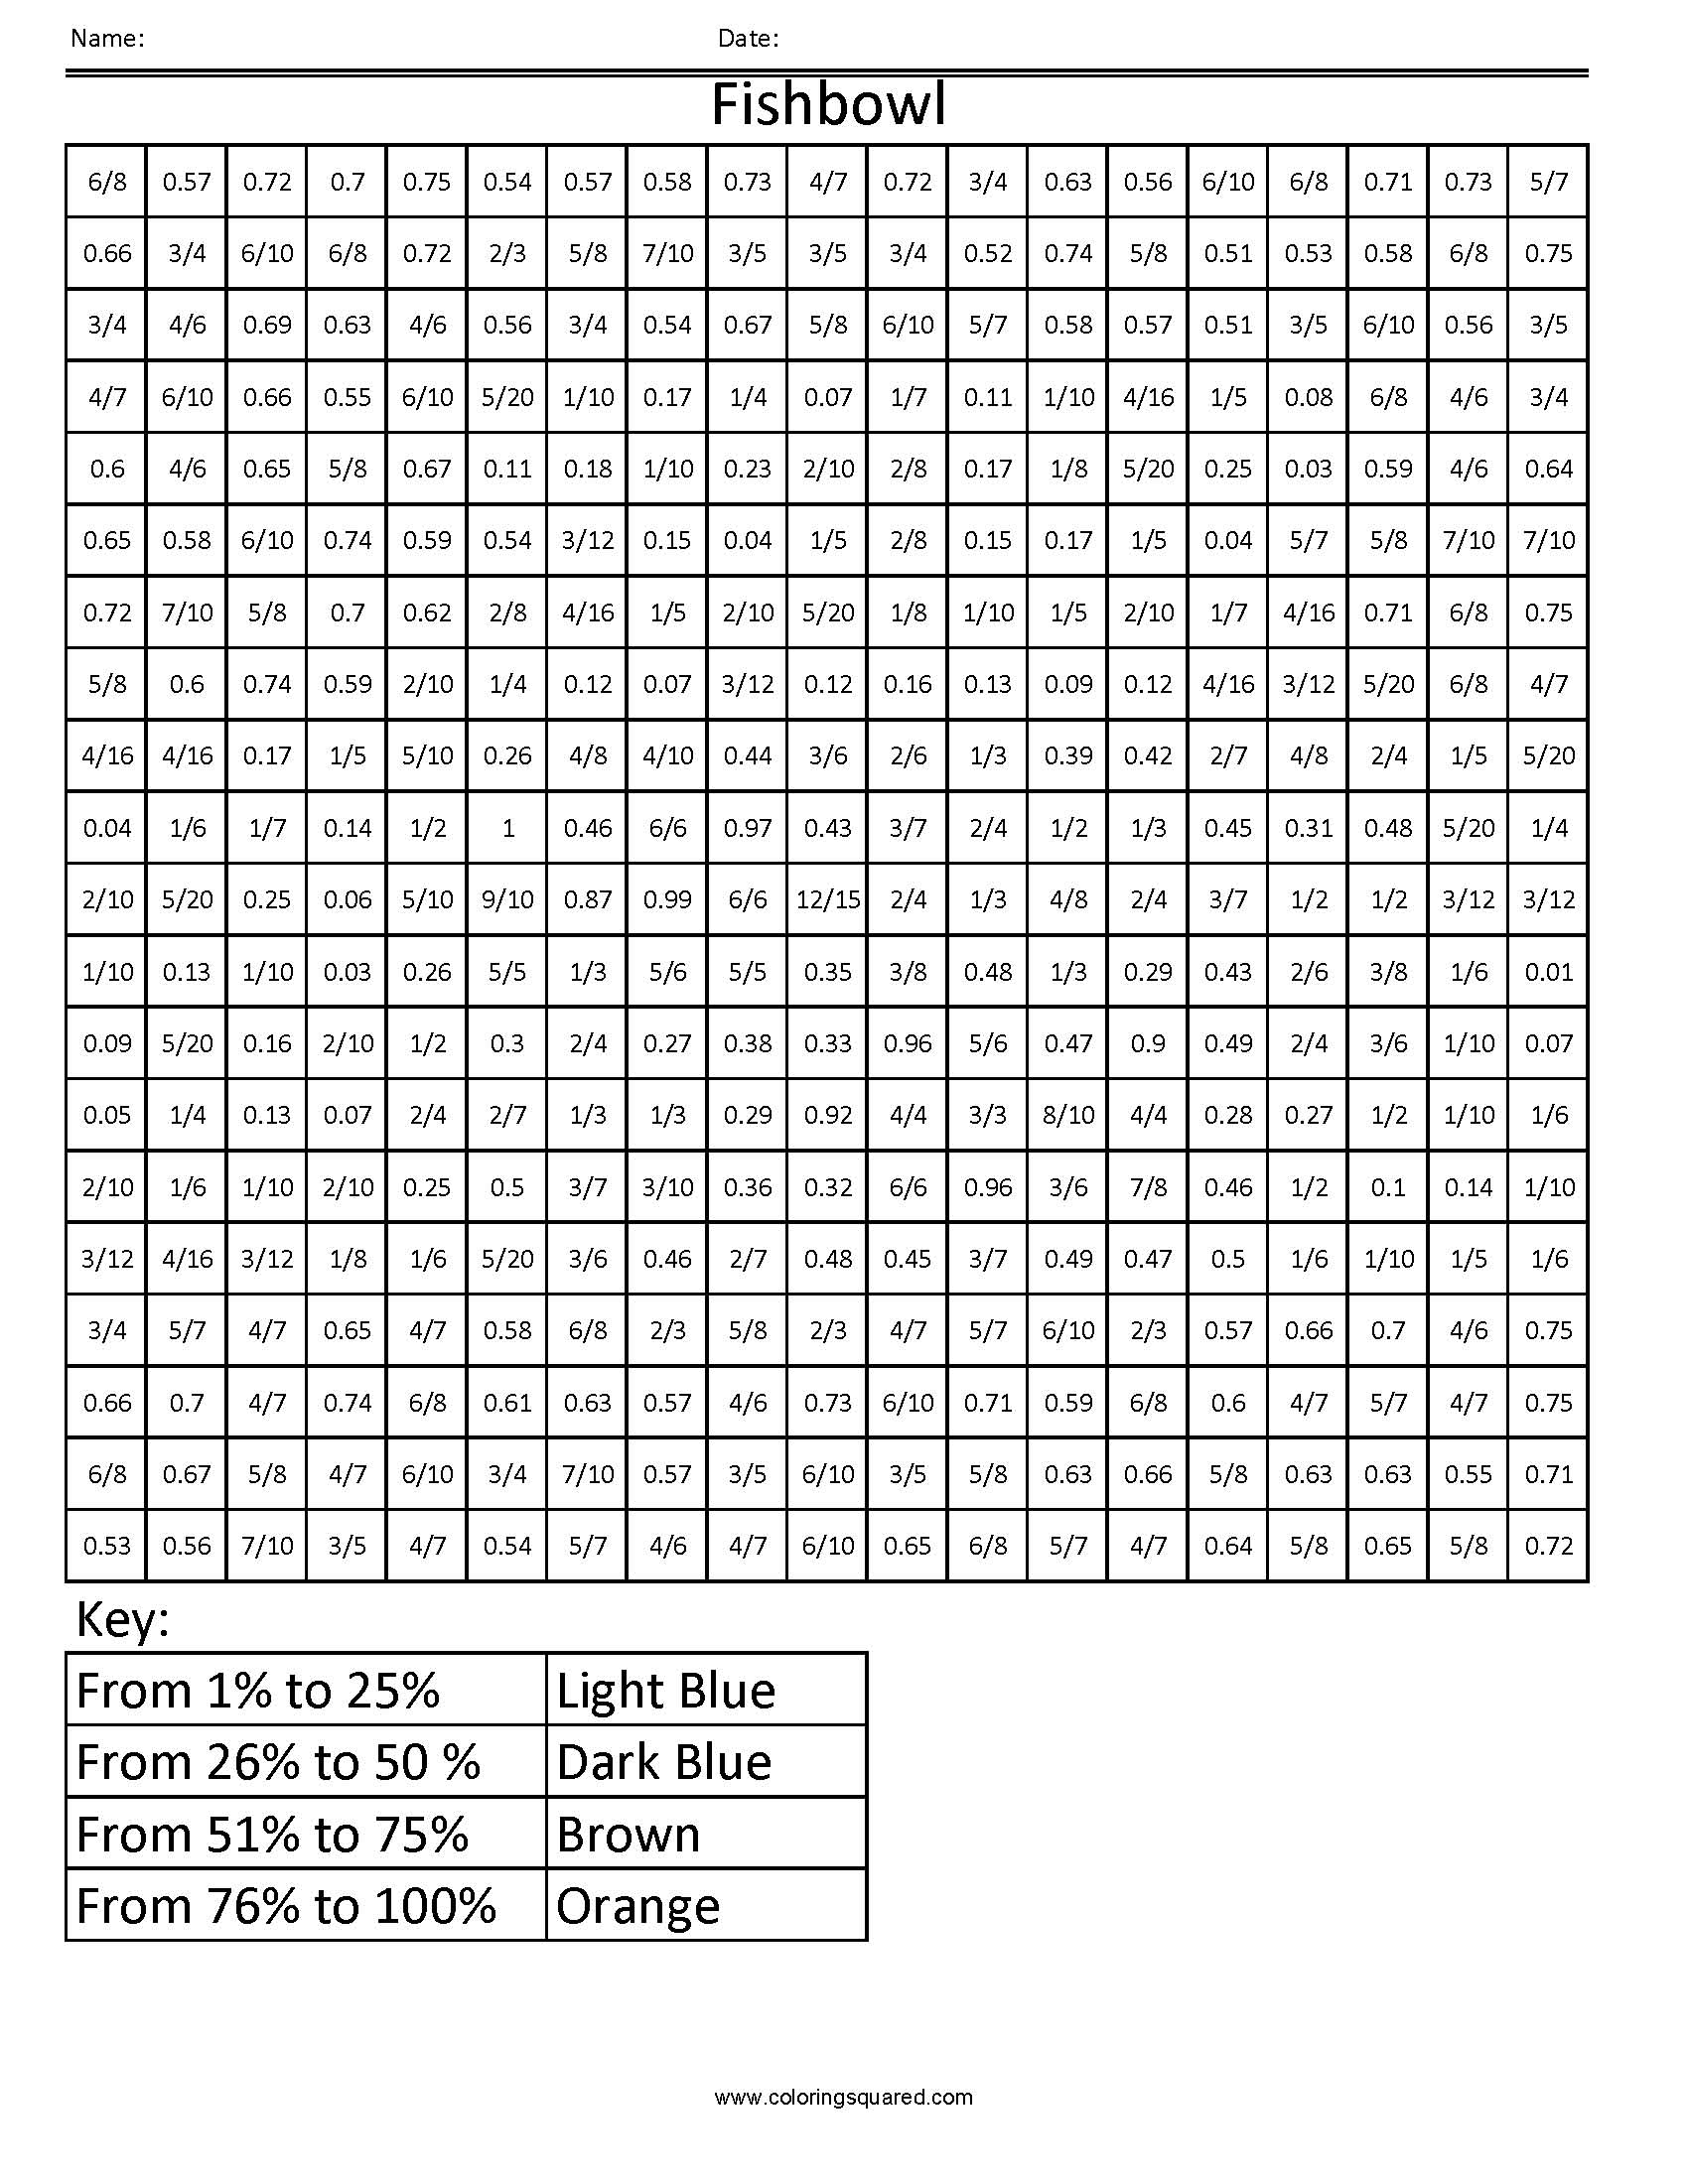 Ppc9 Fishbowl Common Core Coloring Fractions Decimal